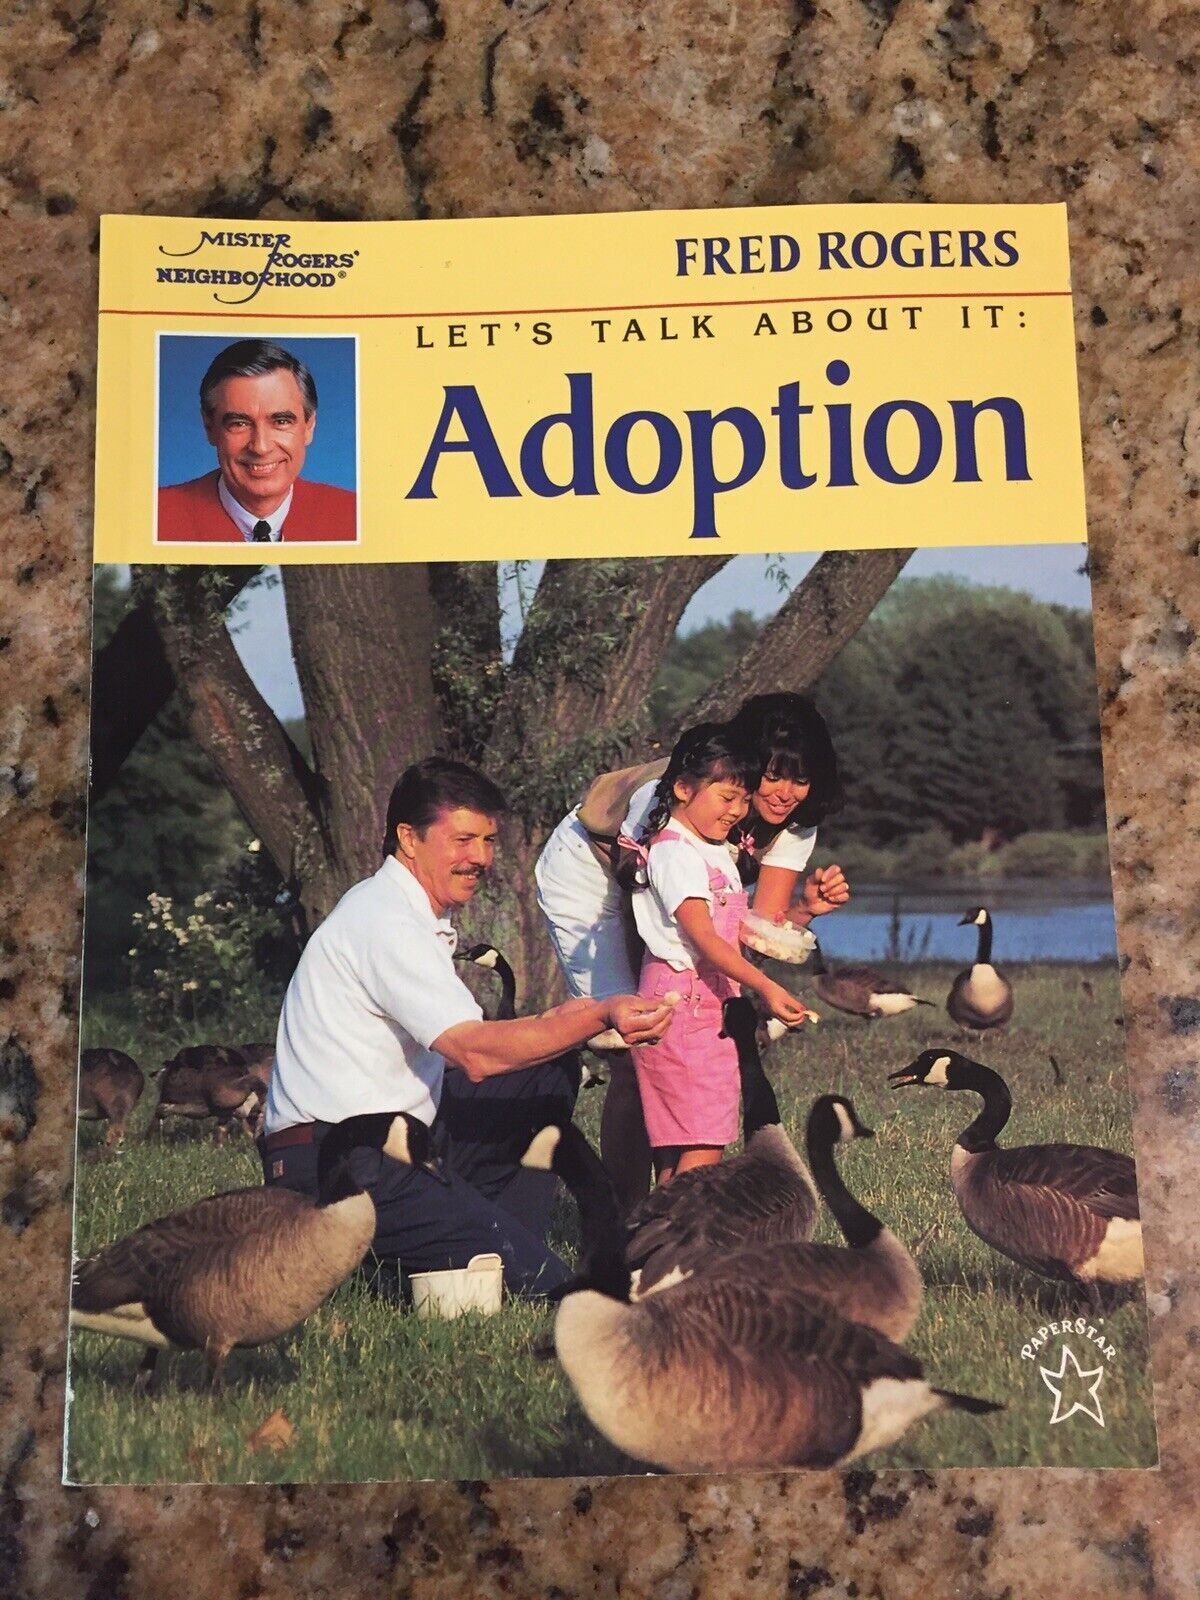 Mr Rogers Ser Let S Talk About It Adoption By Fred Rogers And Fred Rogers 1998 Trade Paperback For Sale Online Ebay